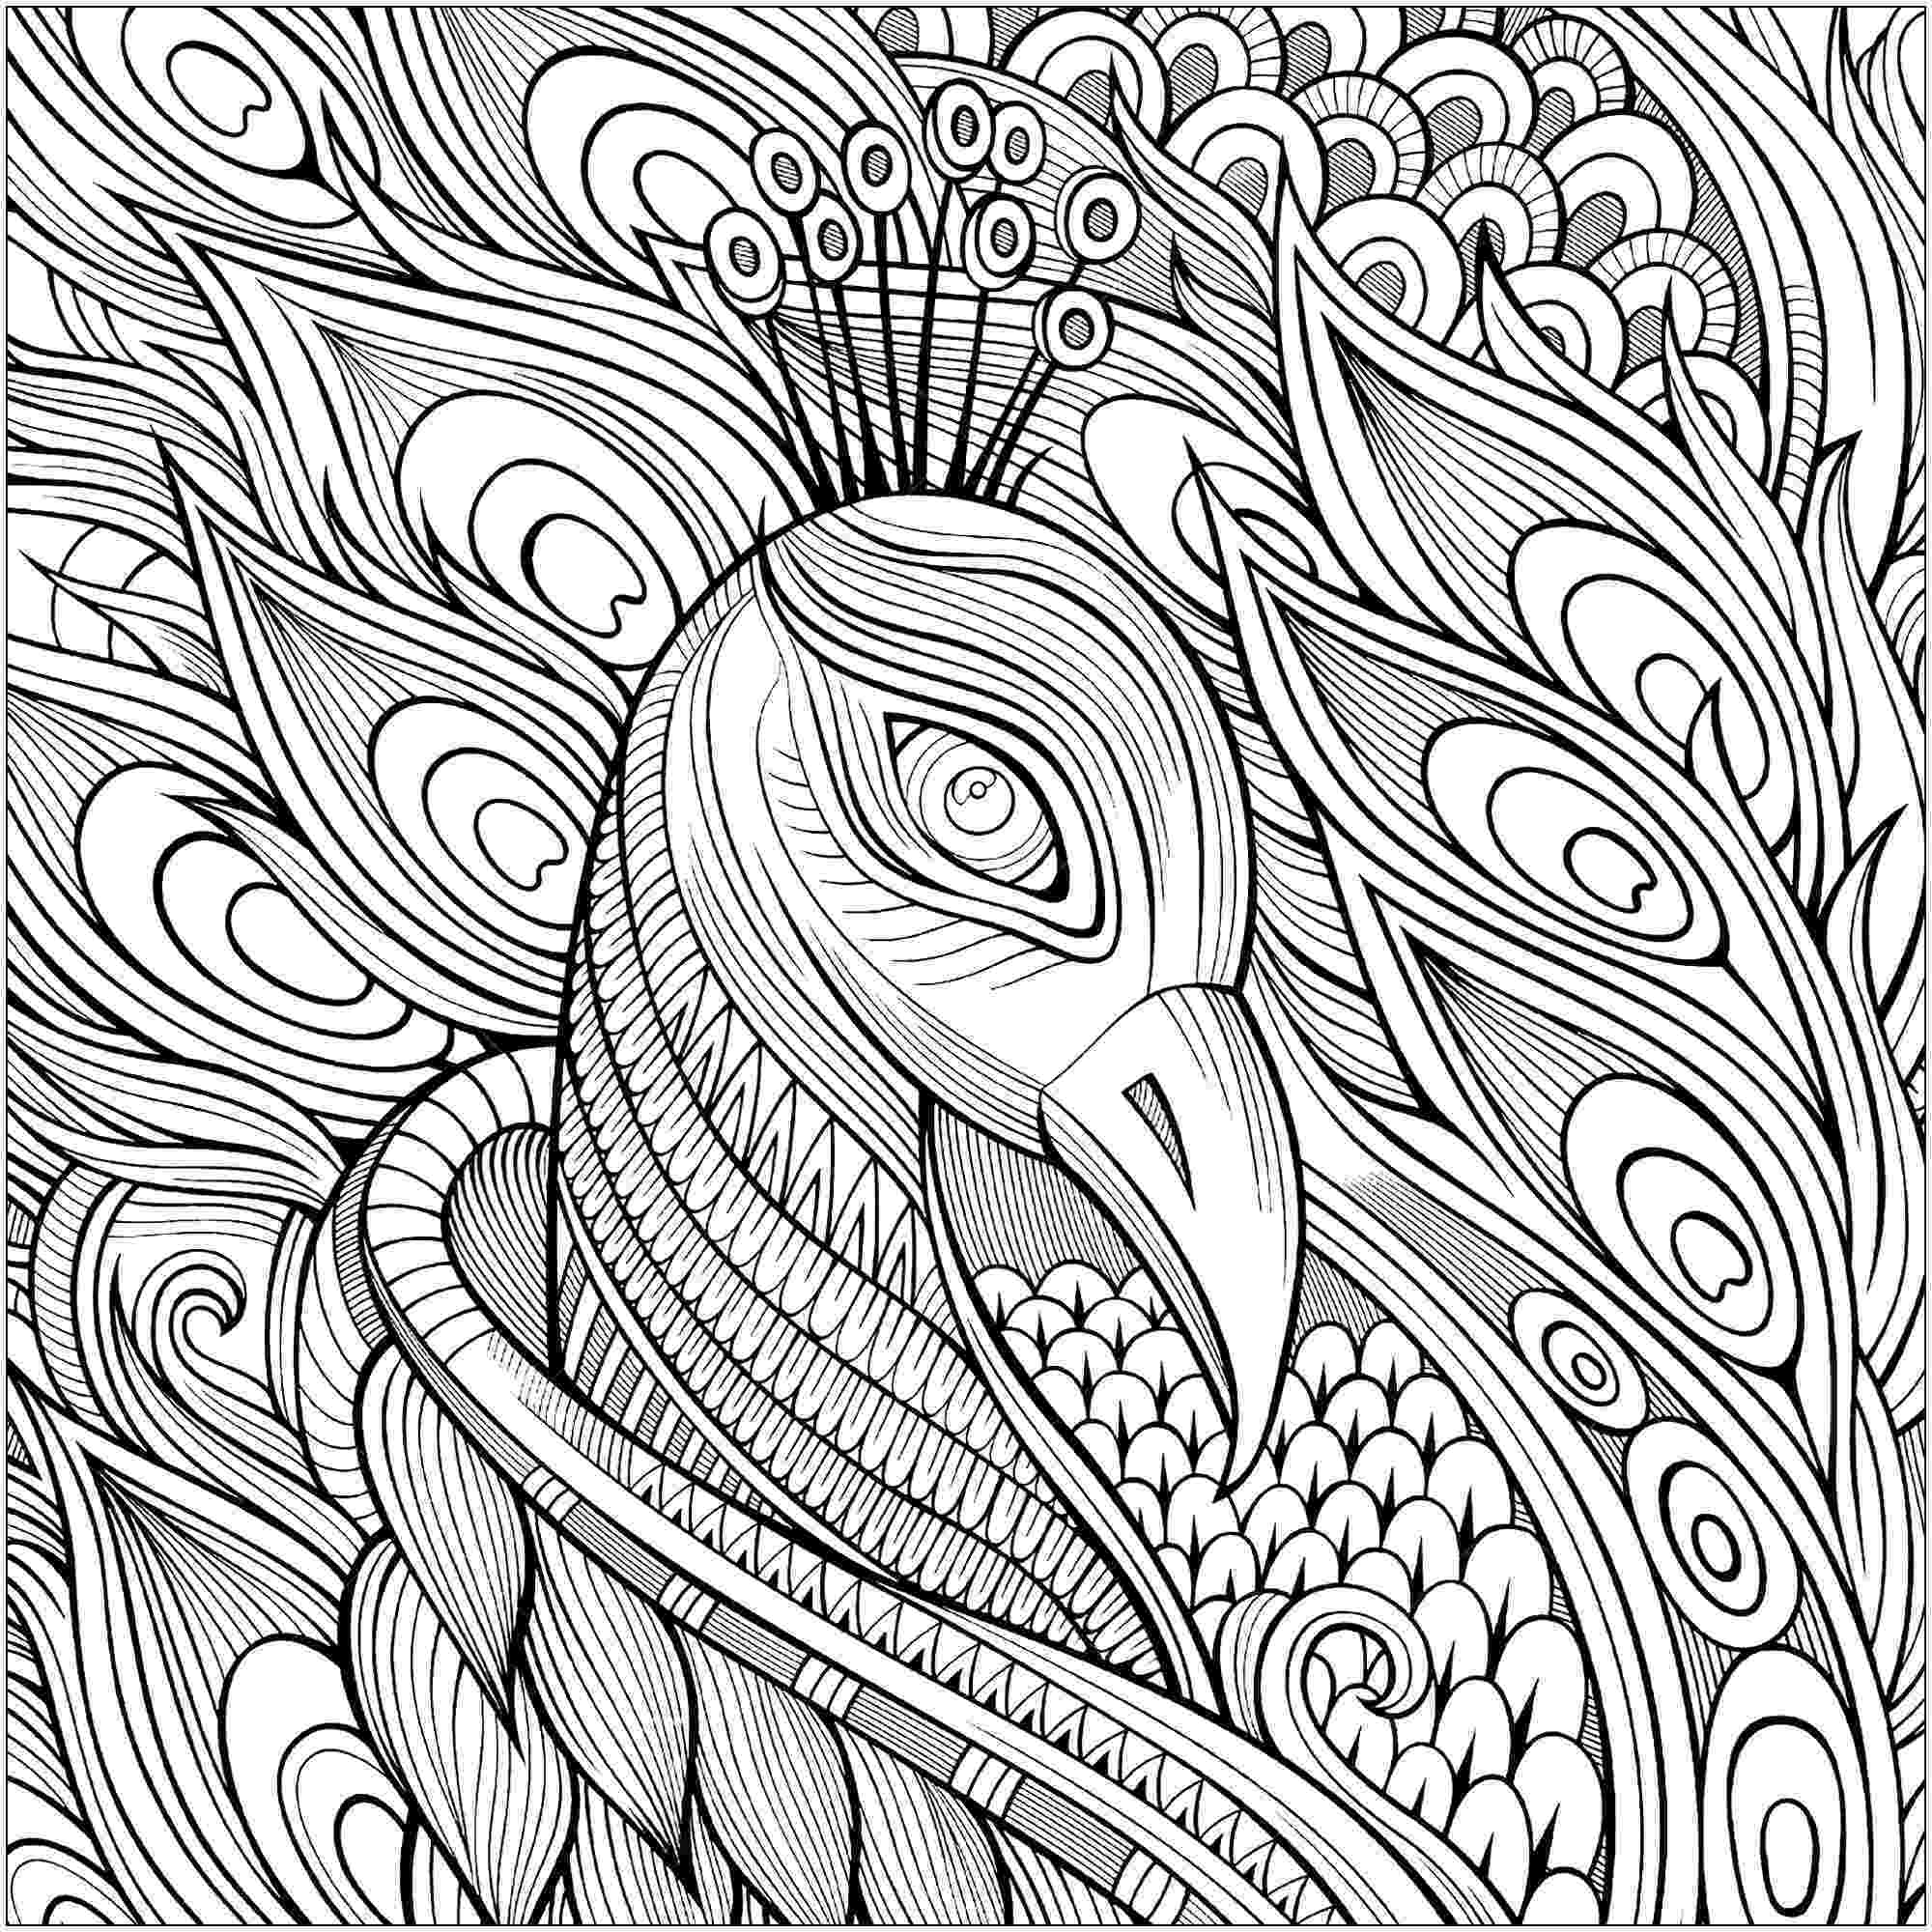 printable detailed coloring pages peacocks to print for free peacocks kids coloring pages detailed printable coloring pages